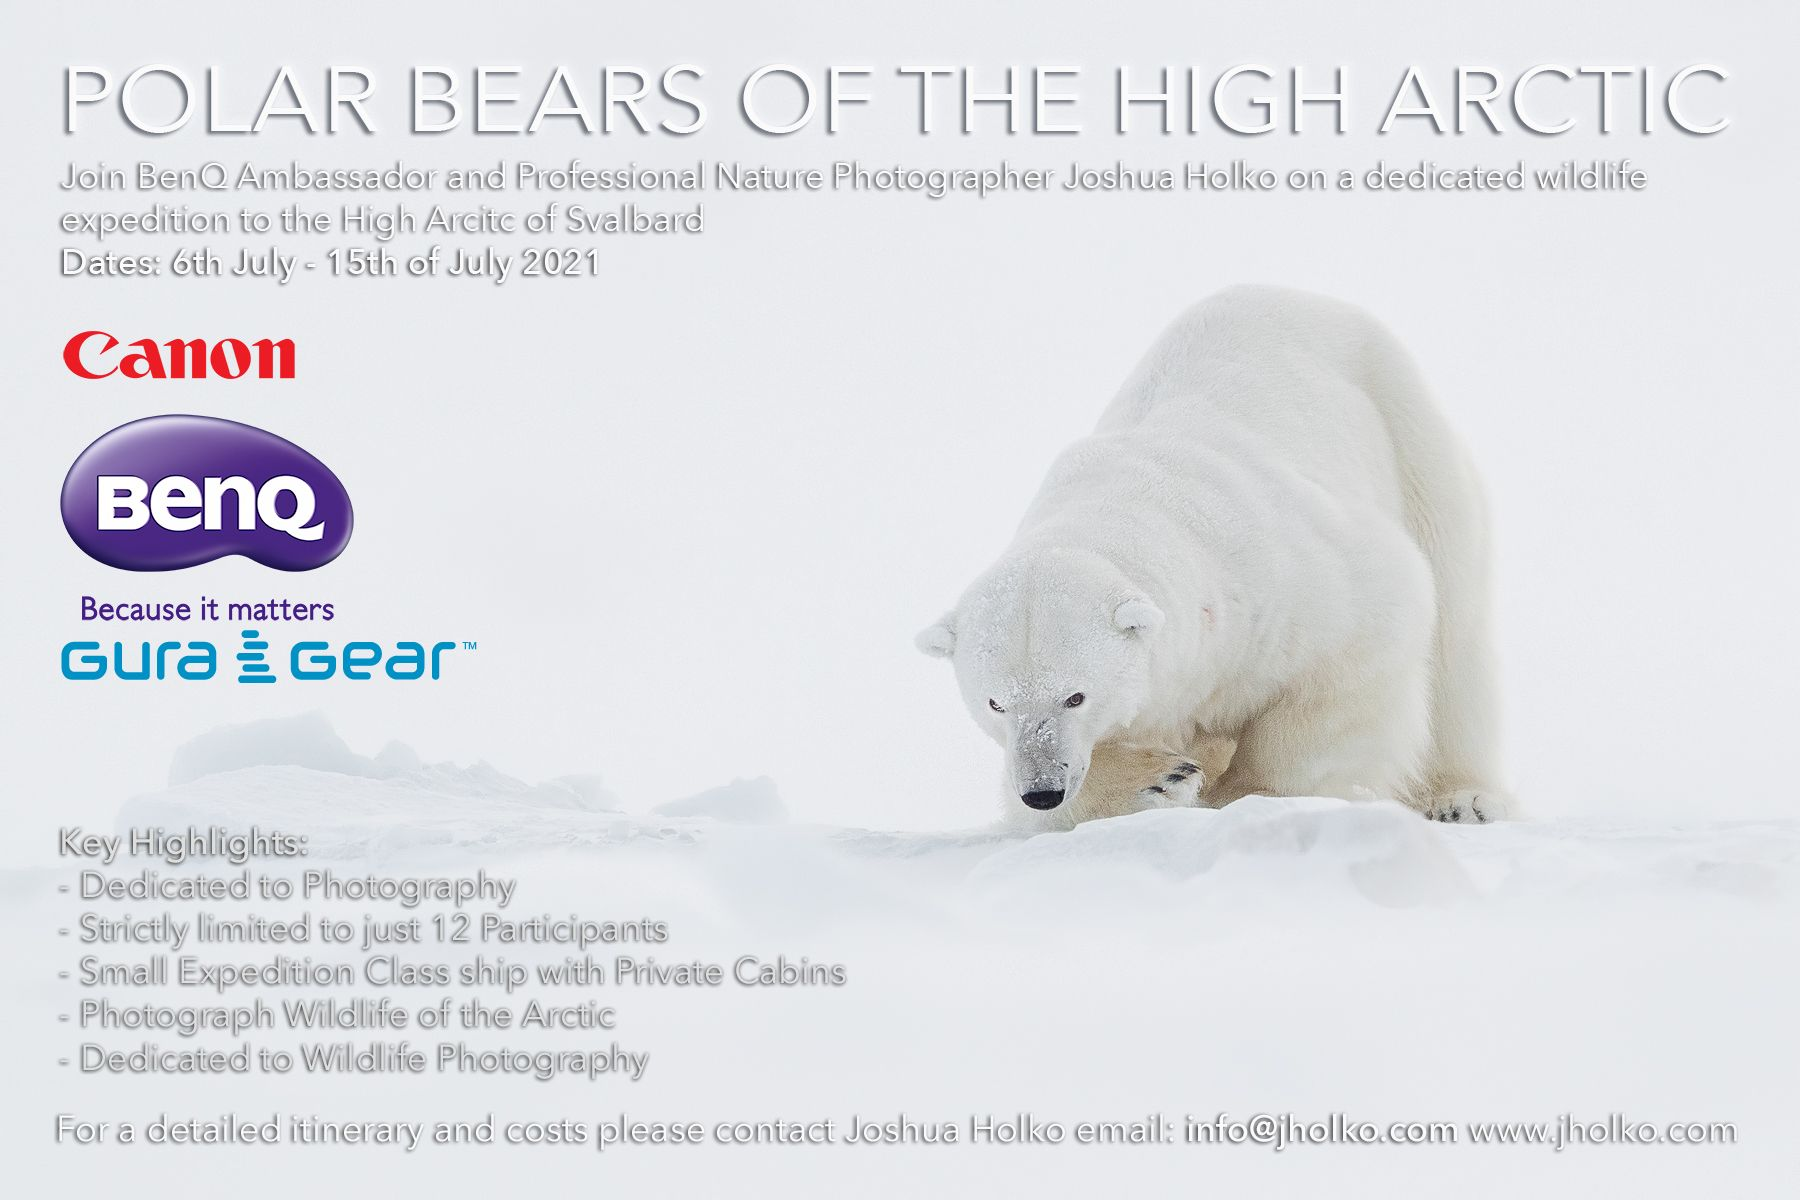 Polar Bears of the High Arctic Expedition